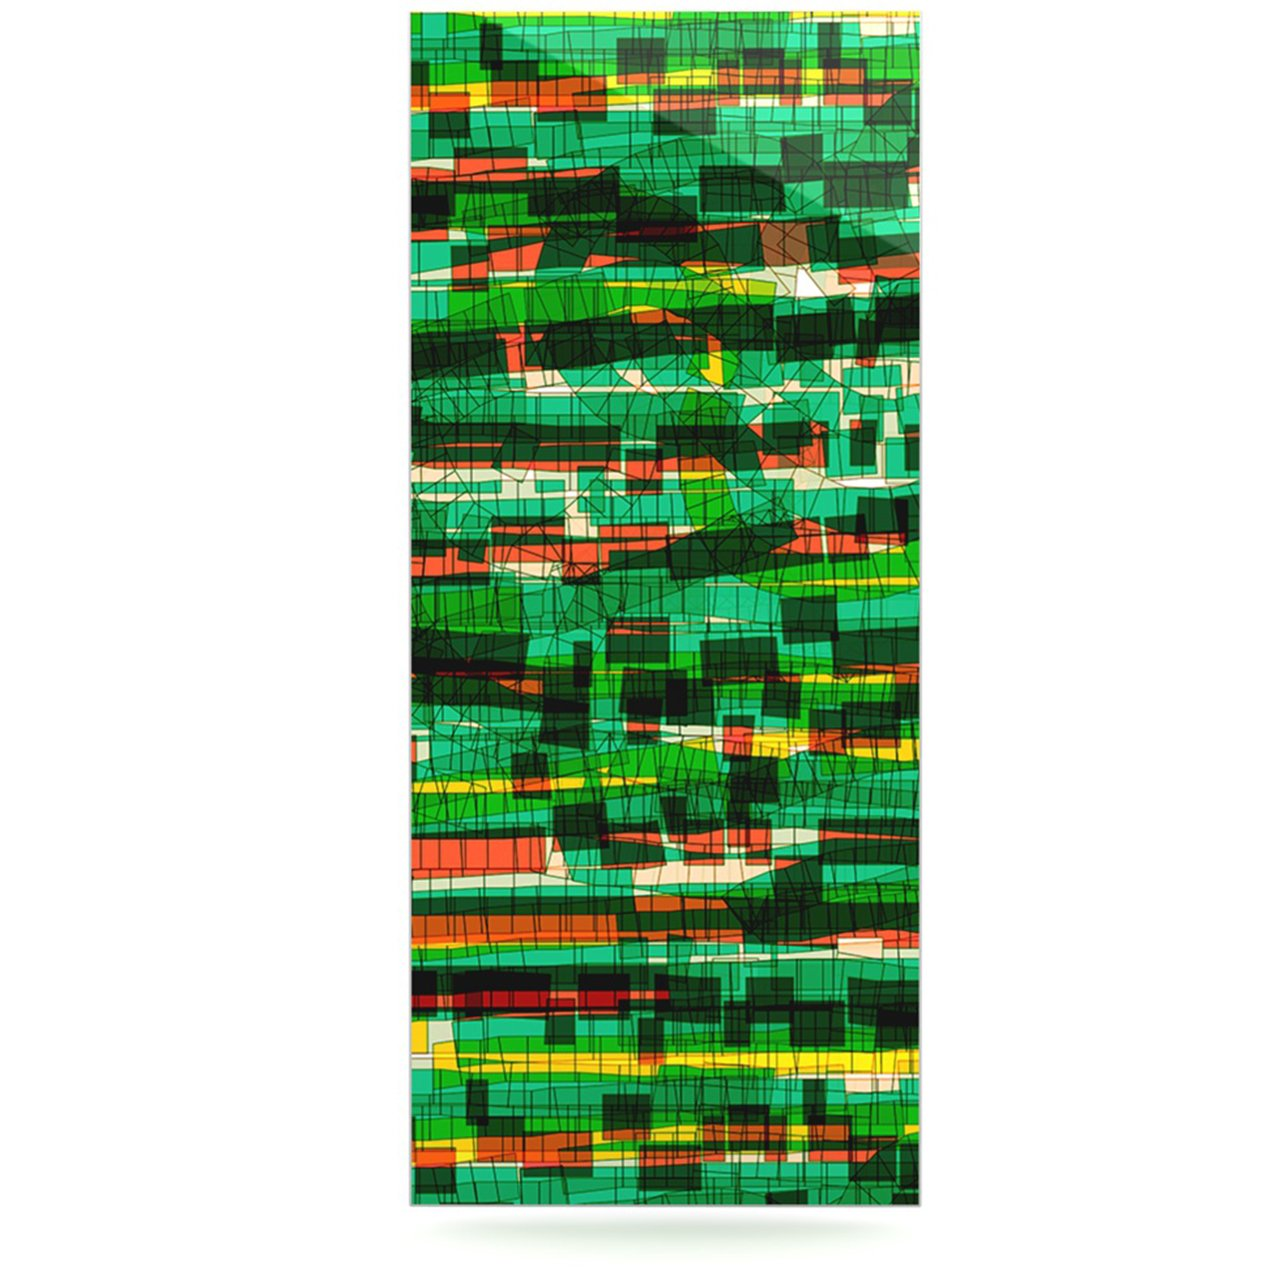 24 x 36 Kess InHouse Frederic Levy-Hadida Squares Traffic Green Luxe Rectangle Panel